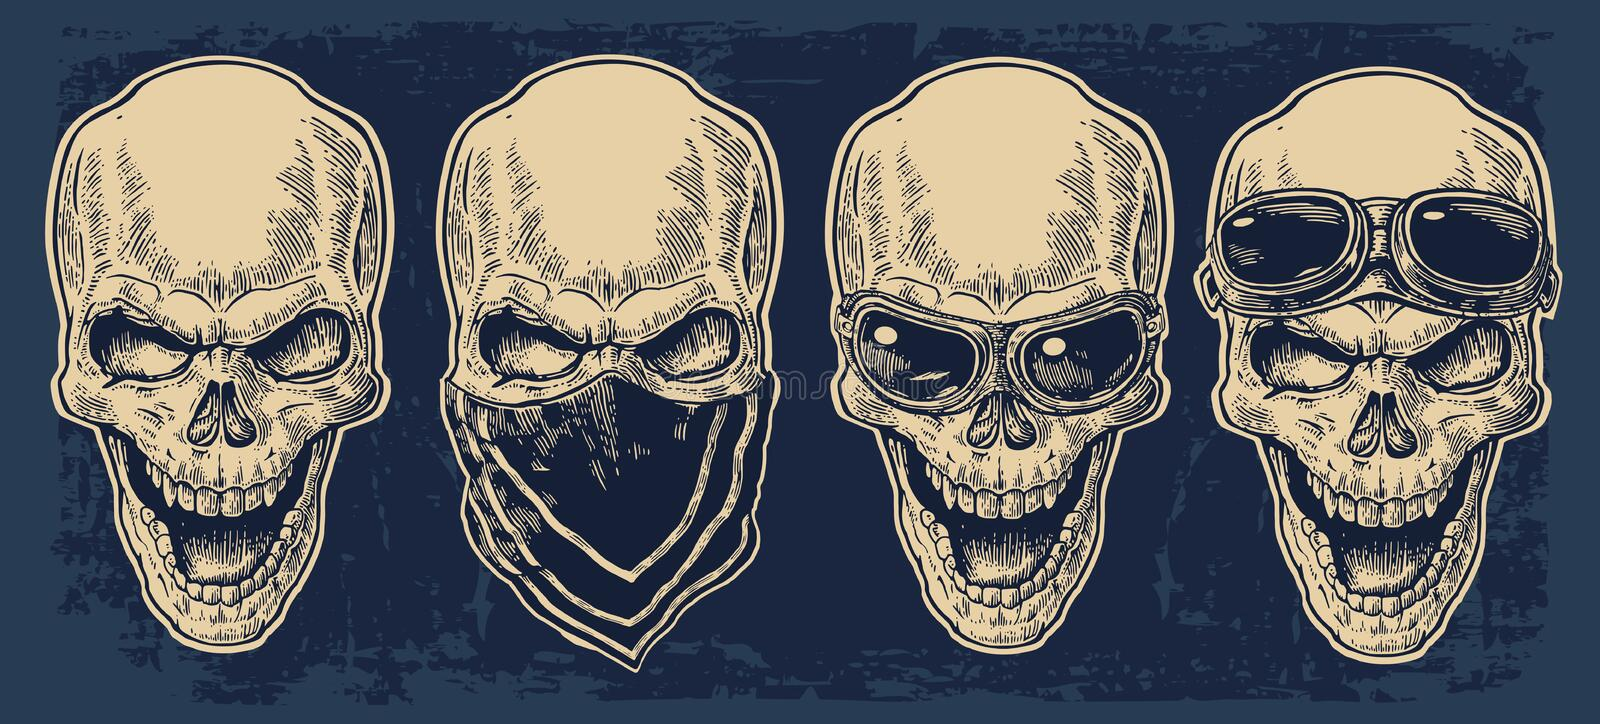 Skull smiling with bandana and glasses for motorcycle. royalty free illustration